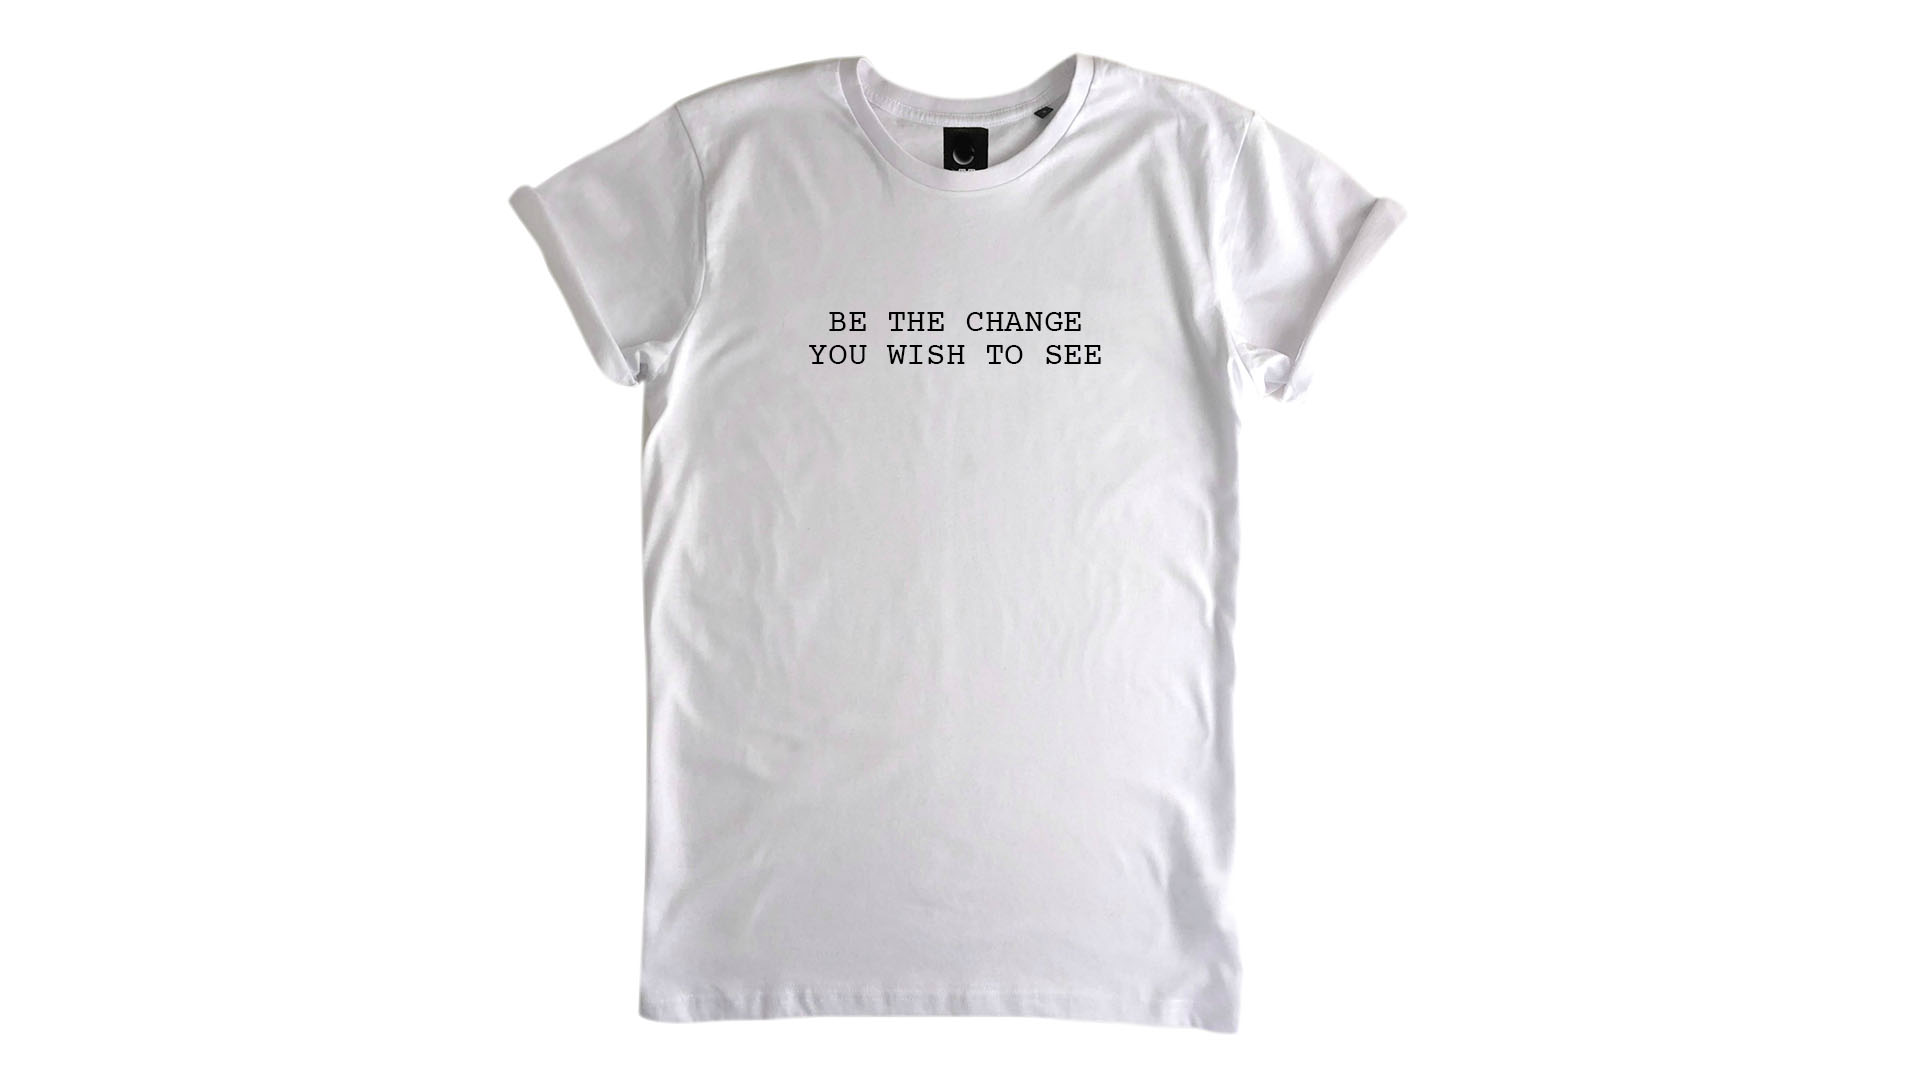 LiveLearn.Yoga Yoga T-Shirt Organic Cotton Be the Change You Wish to See White